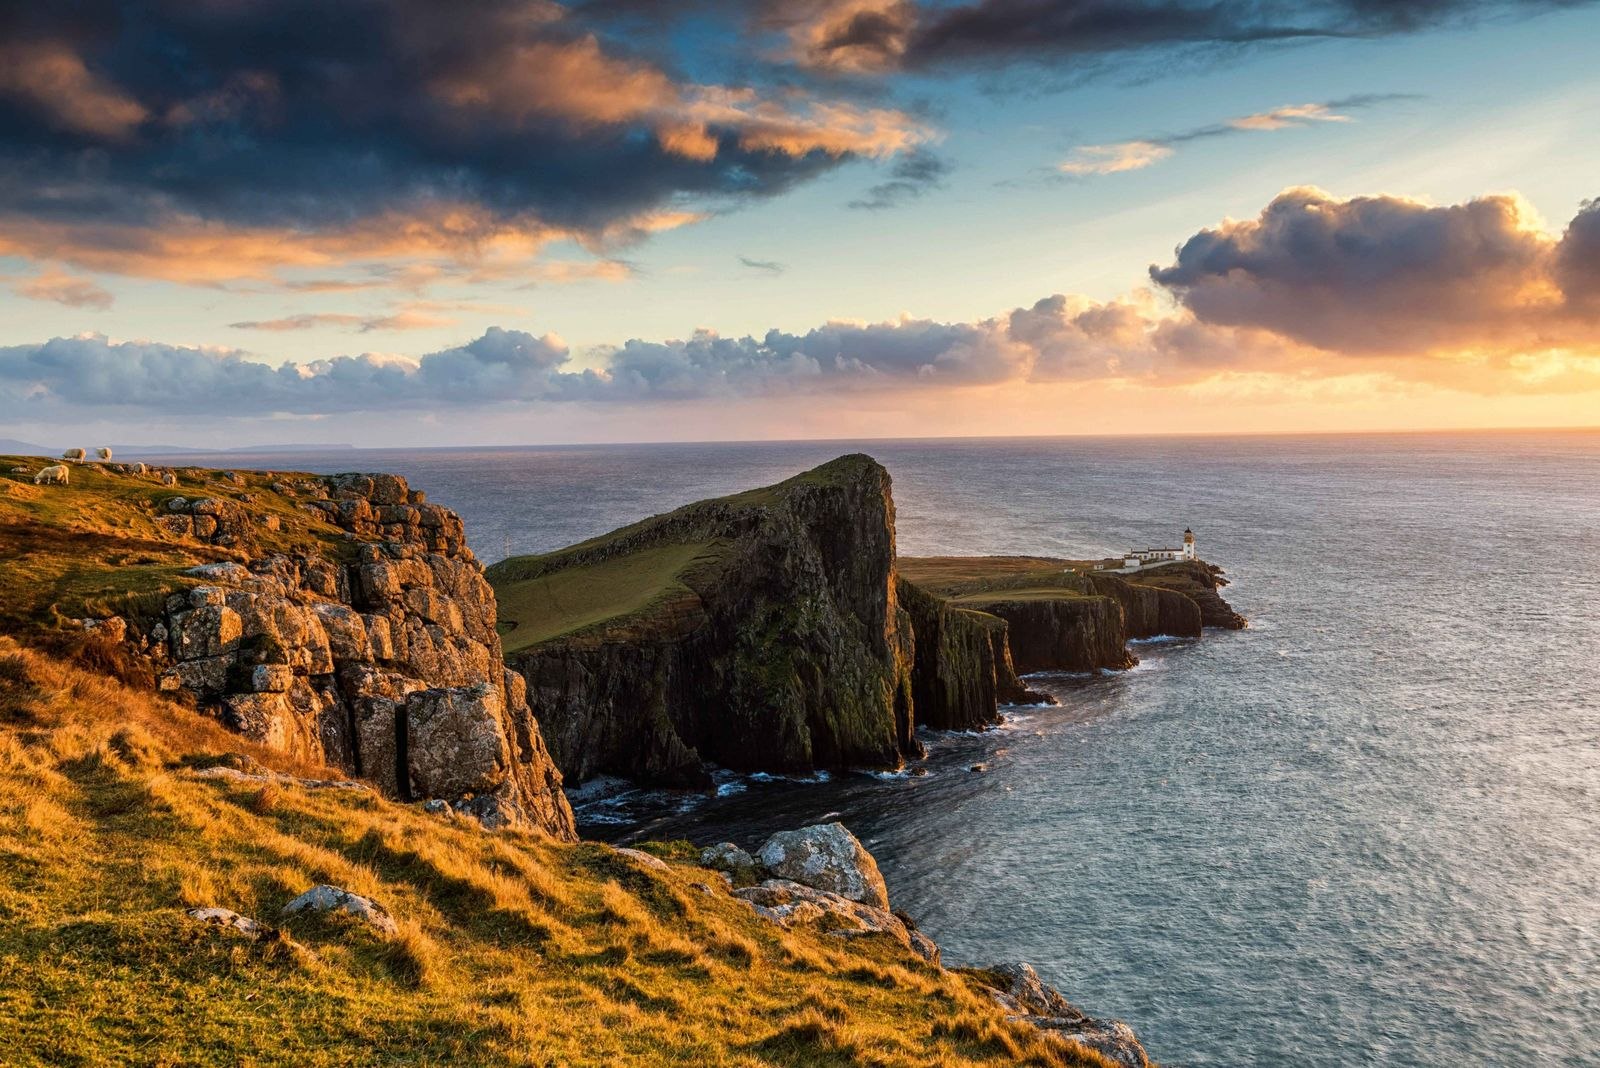 Neist Point Lighthouse at sunset, Isle of Skye, Scotland.